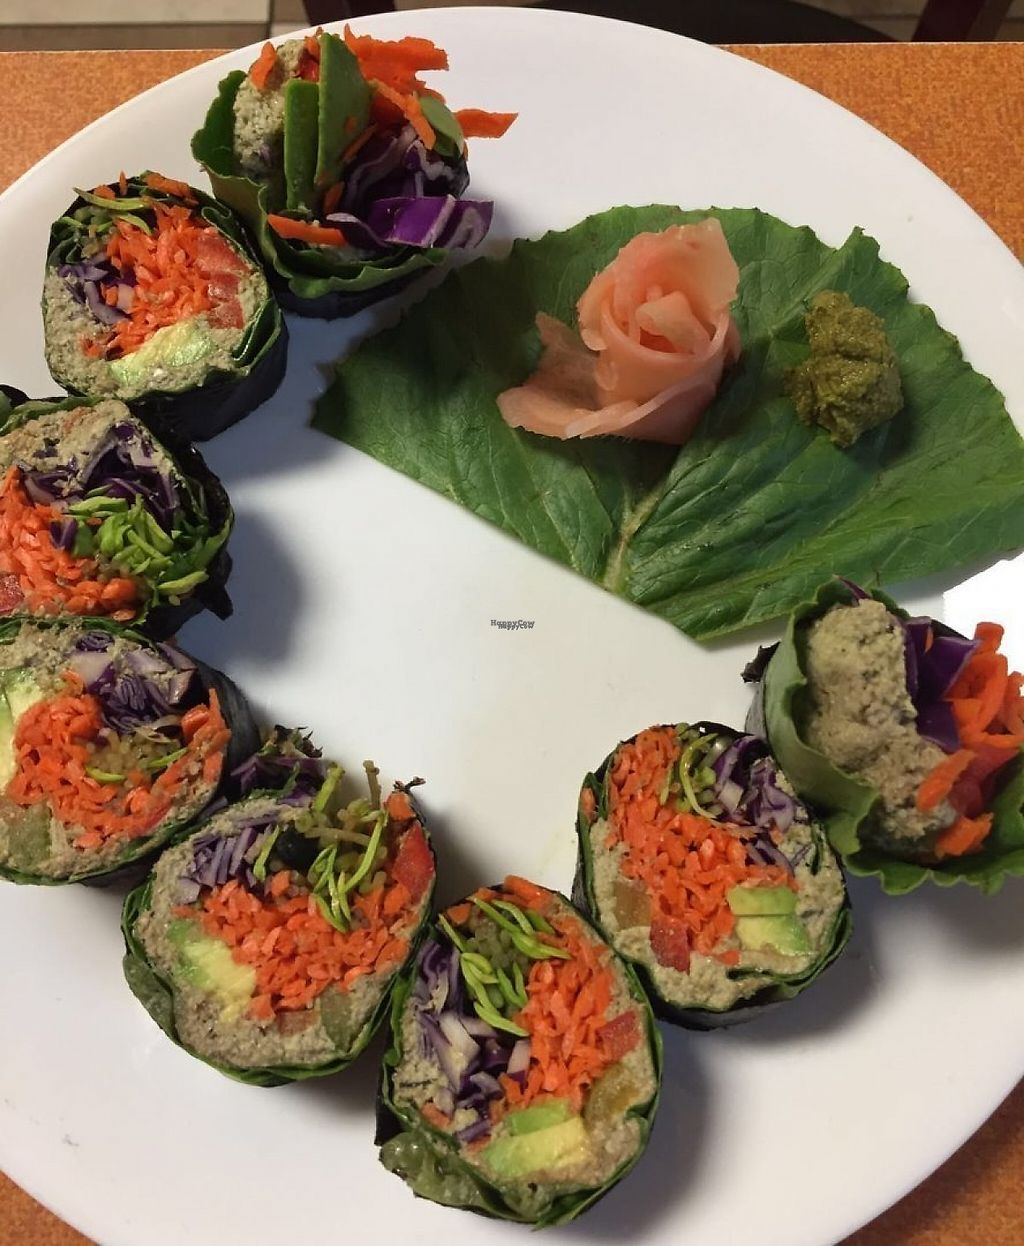 """Photo of Green Wave Cafe  by <a href=""""/members/profile/organicsweets"""">organicsweets</a> <br/>Raw Vegan Veggie Sushi Roll <br/> December 4, 2016  - <a href='/contact/abuse/image/16595/197231'>Report</a>"""